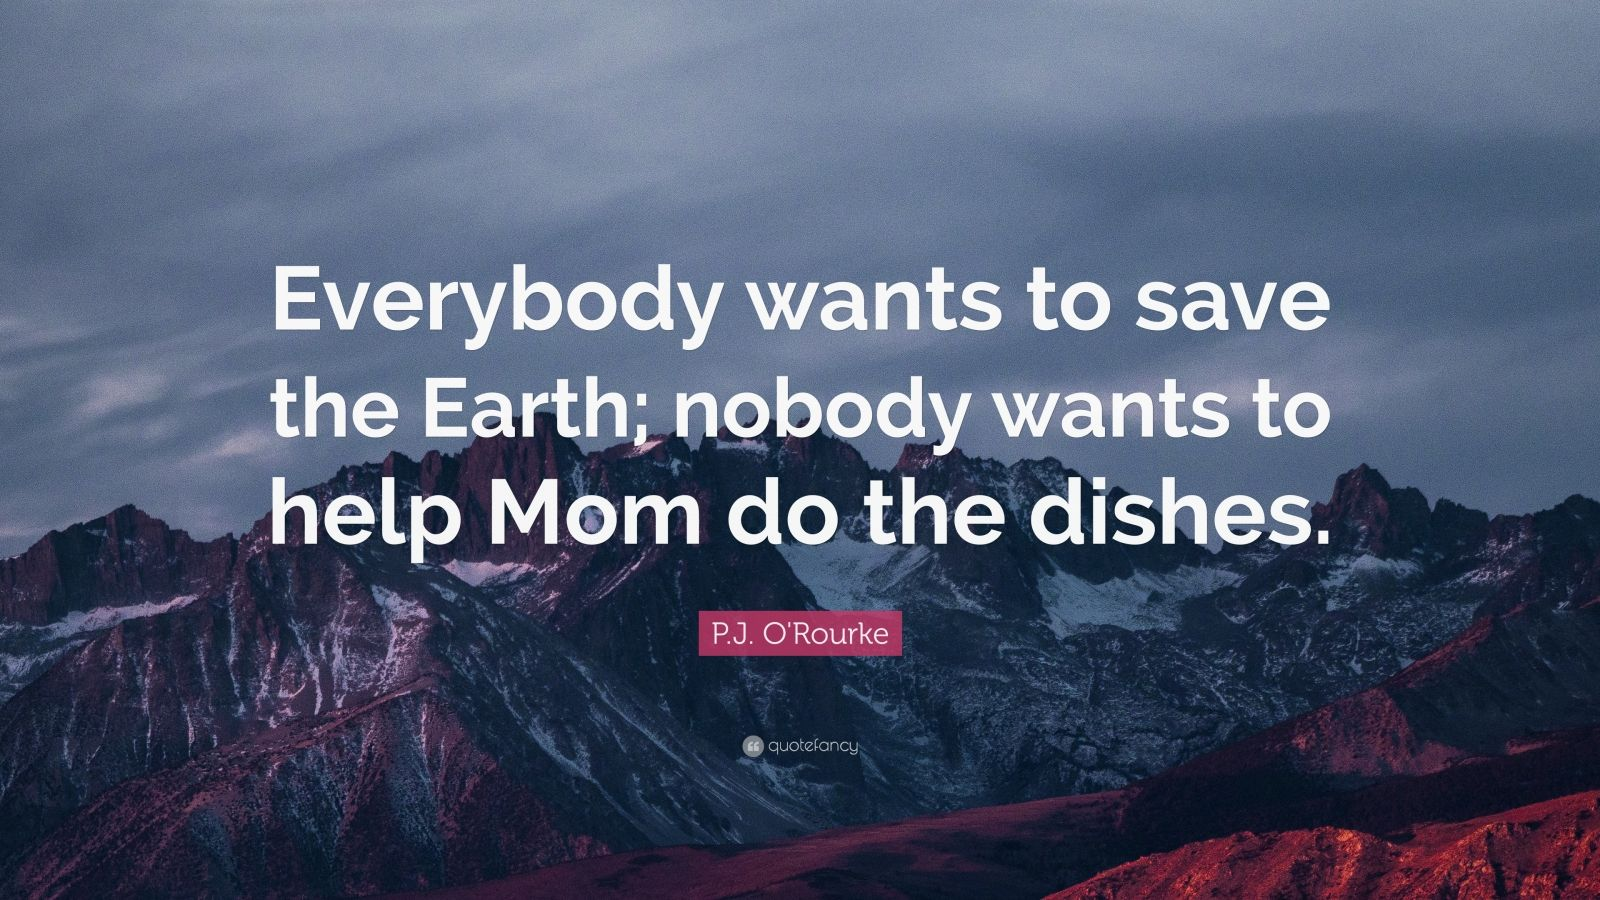 """P.J. O'Rourke Quote: """"Everybody wants to save the Earth; nobody wants to help Mom do the dishes."""""""